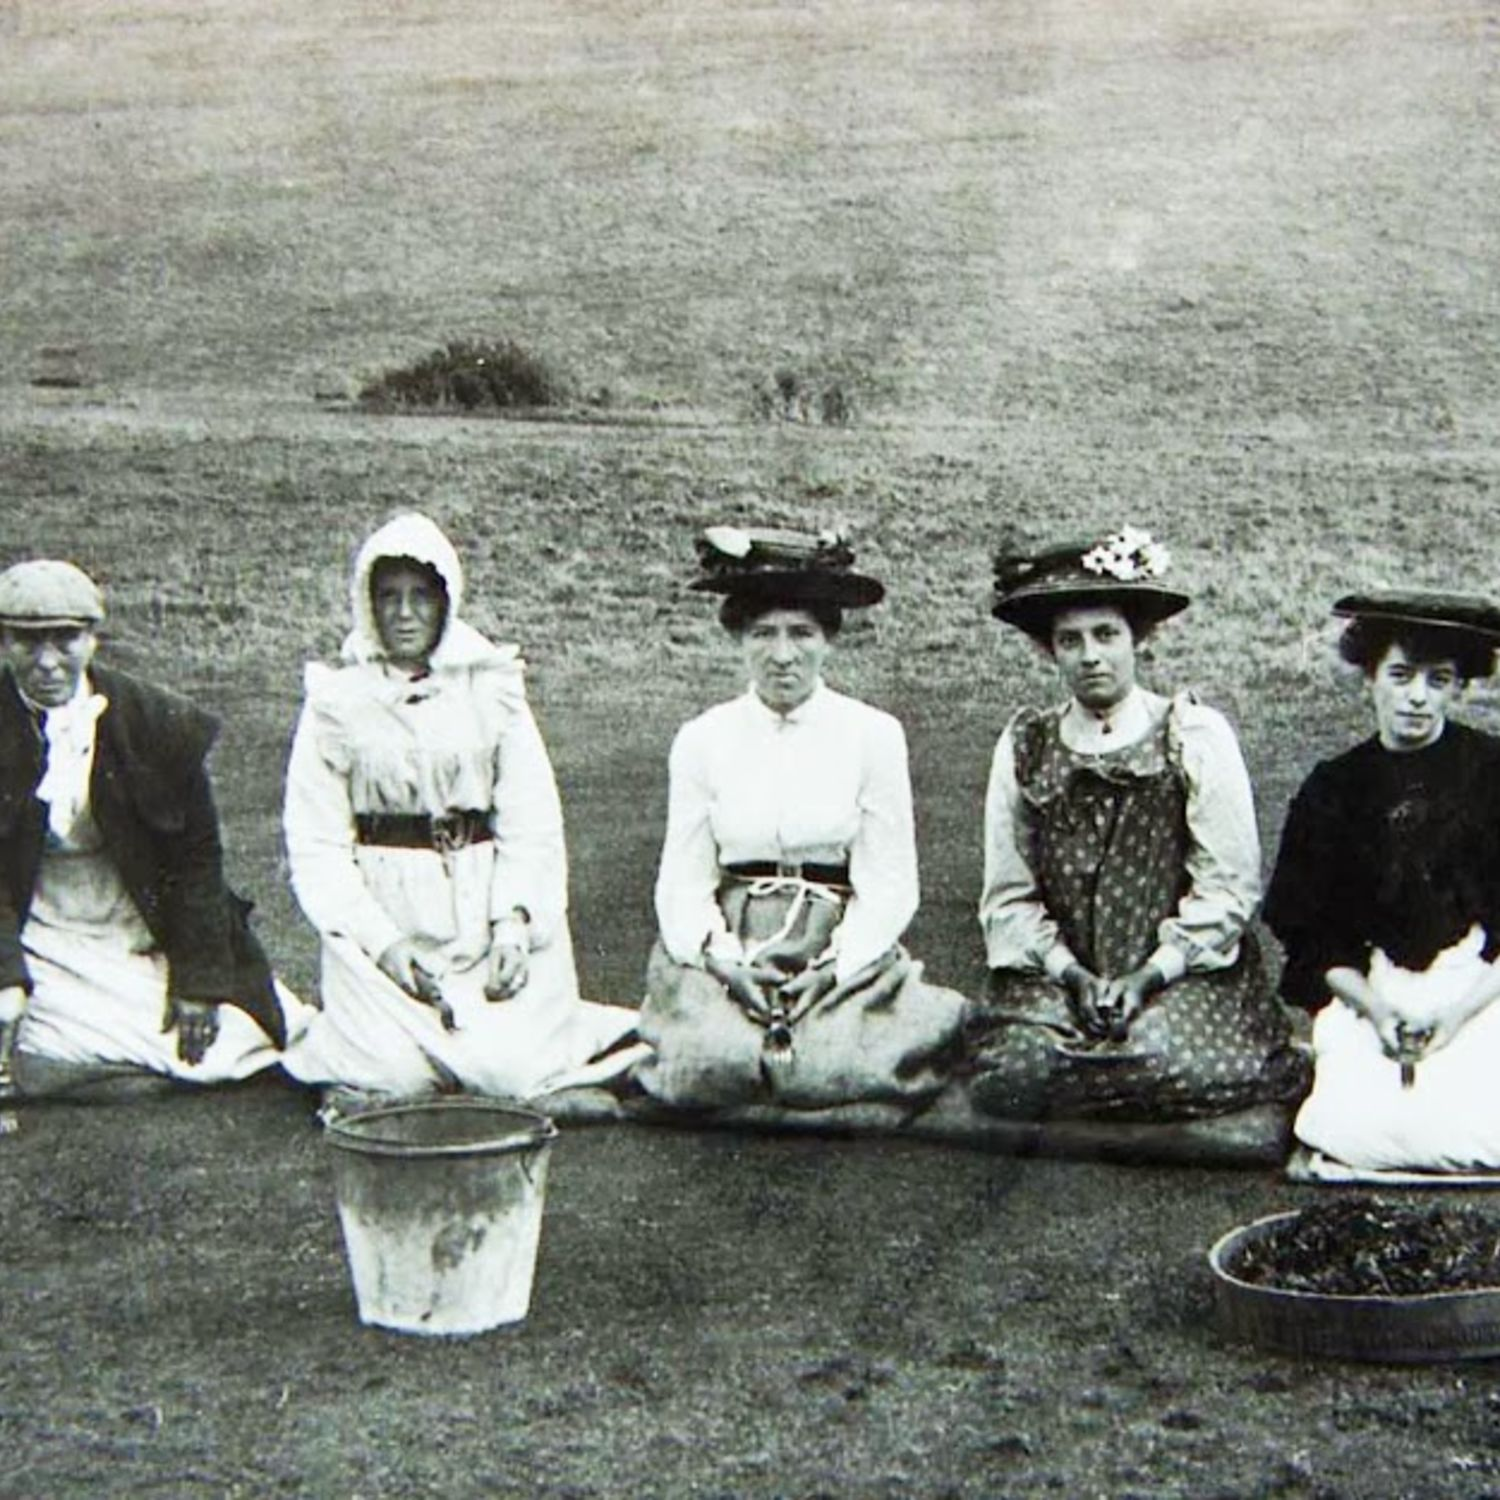 Wives of the greens staff did the weeding and mowing as their husbands were away at the 1914-18 Worl